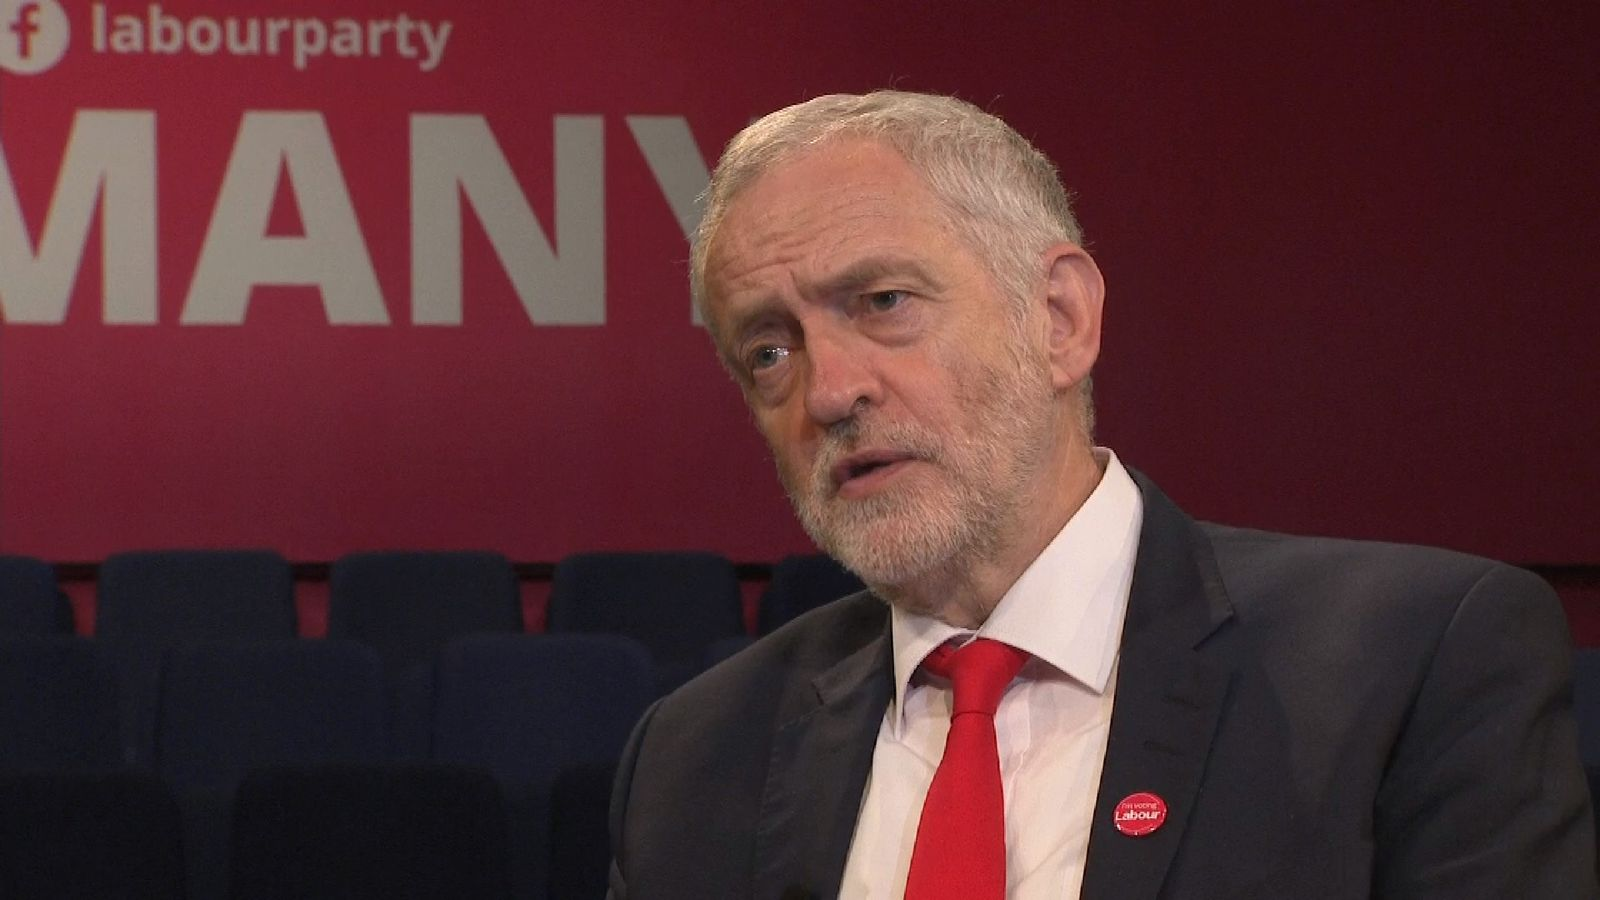 Jeremy Corbyn wouldn't say whether immigration figures would rise or fall under a Labour government